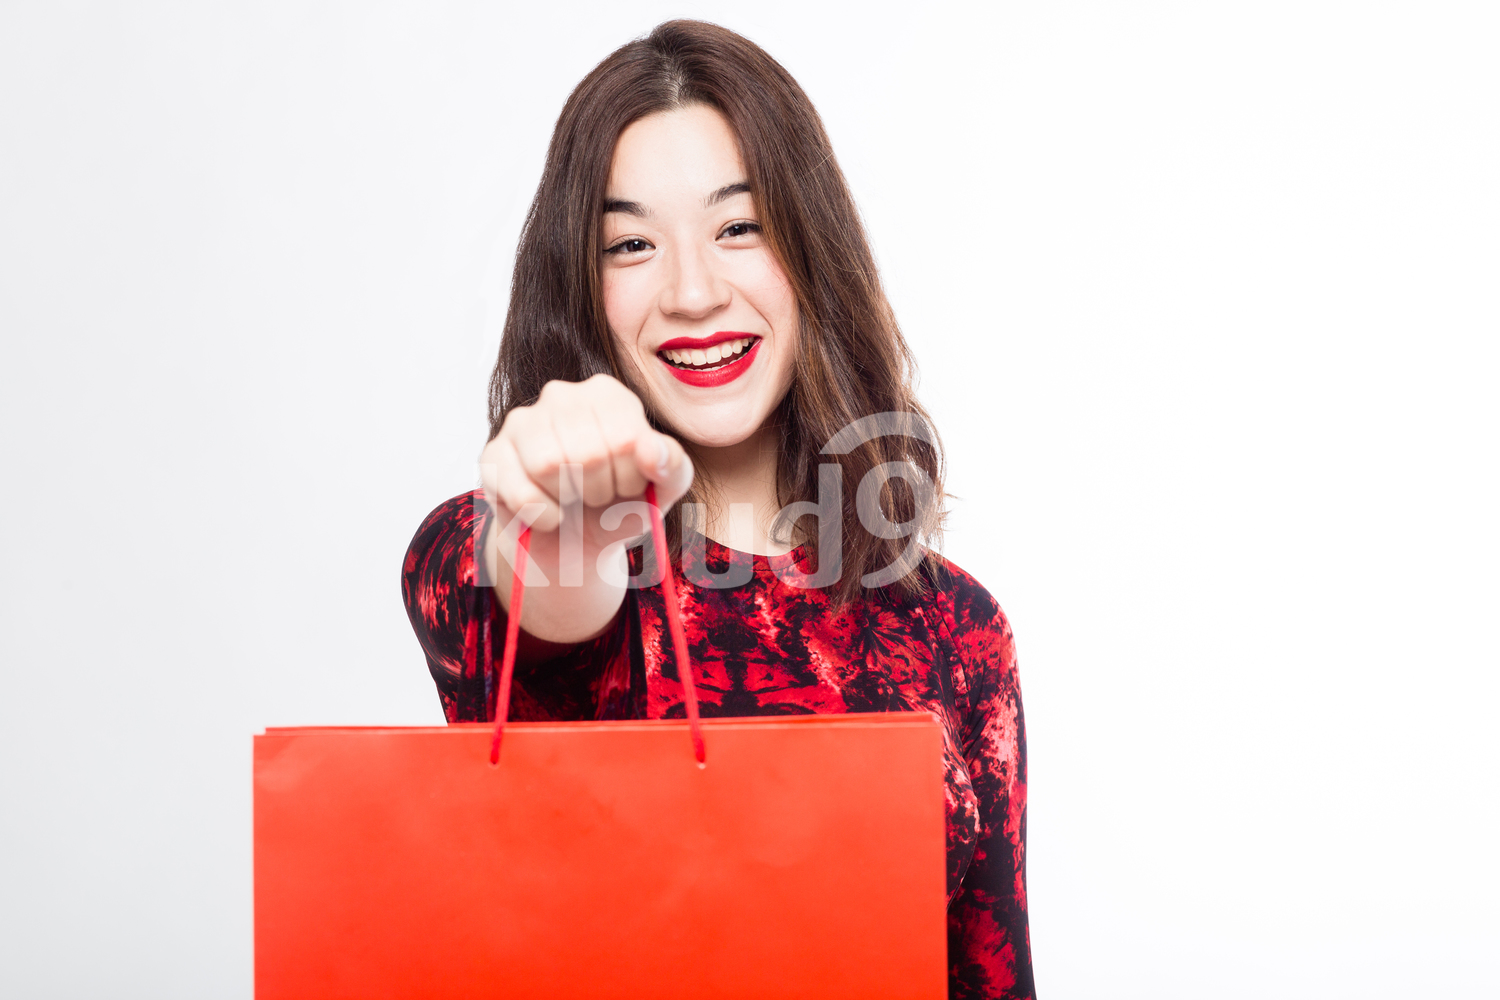 Eurasian Woman with her Gift